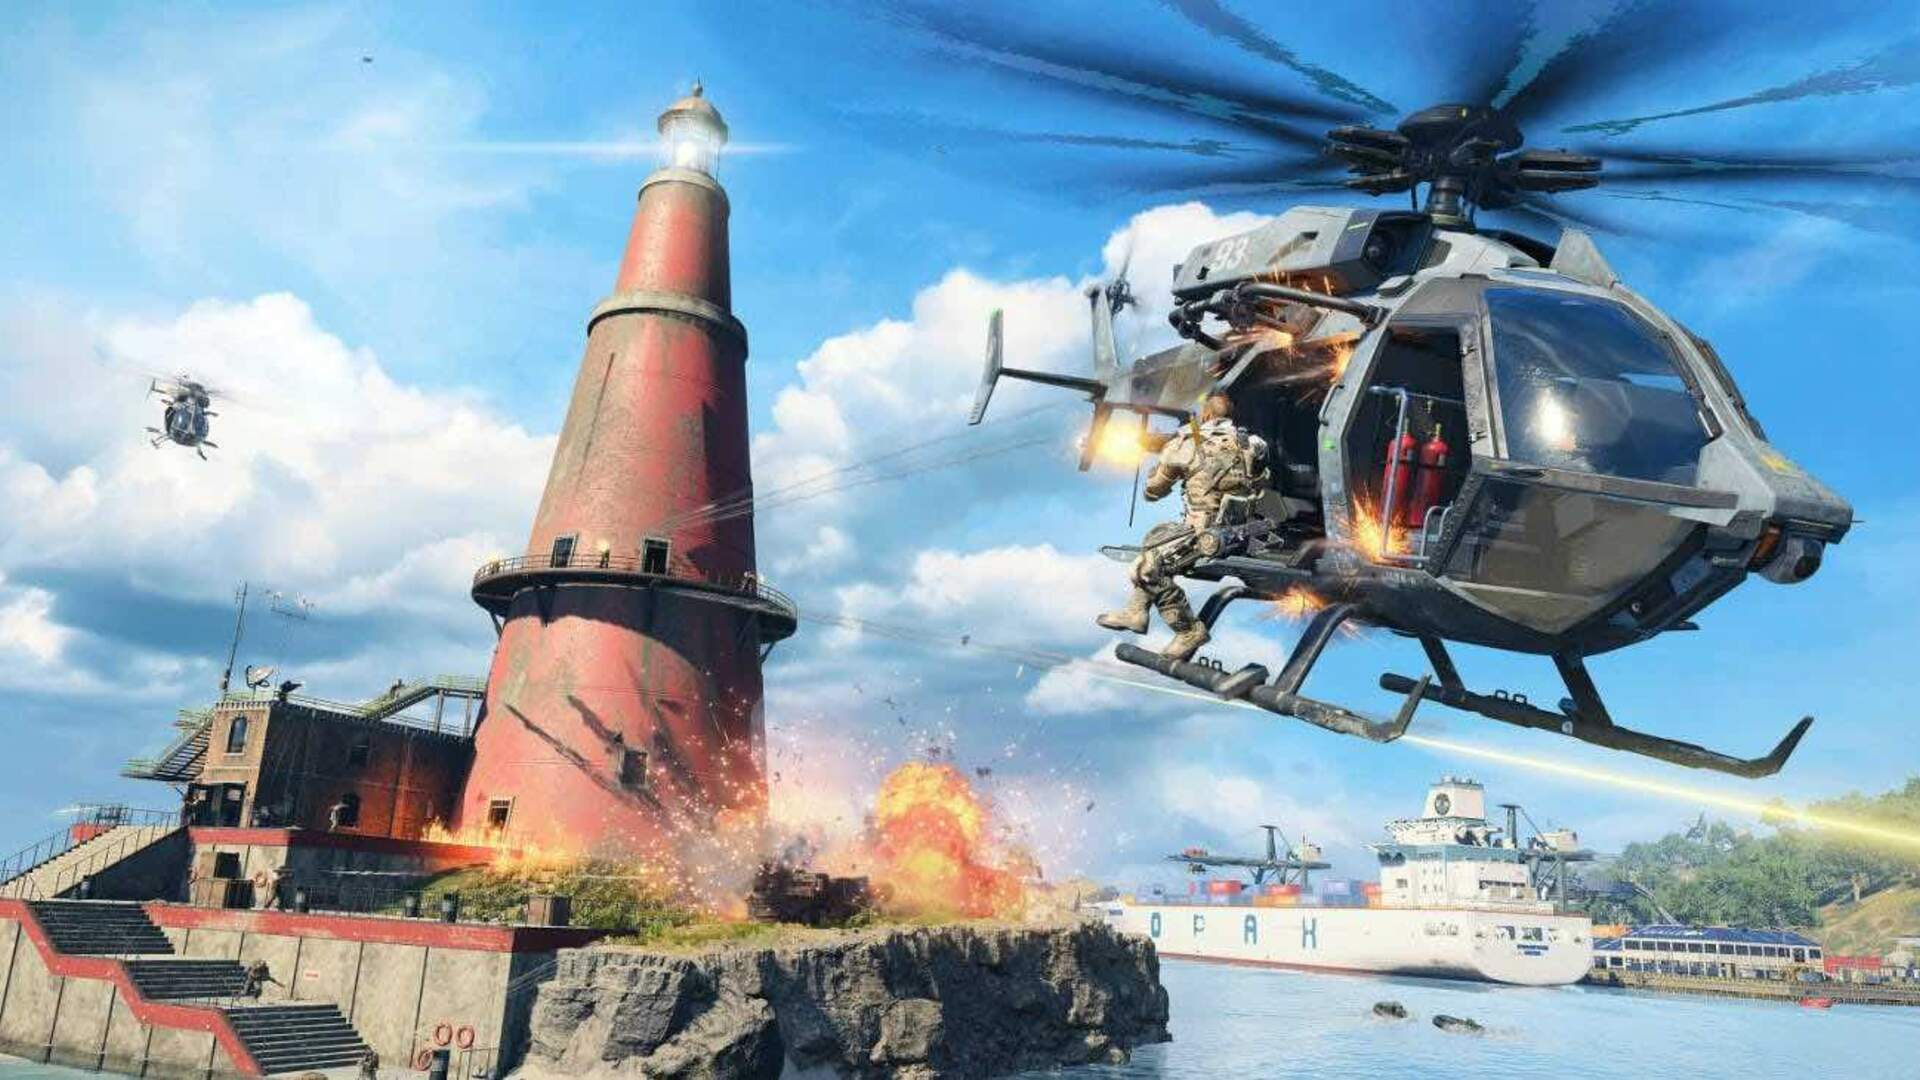 New Call of Duty Blackout Beta Patch Ups Player Count to 88